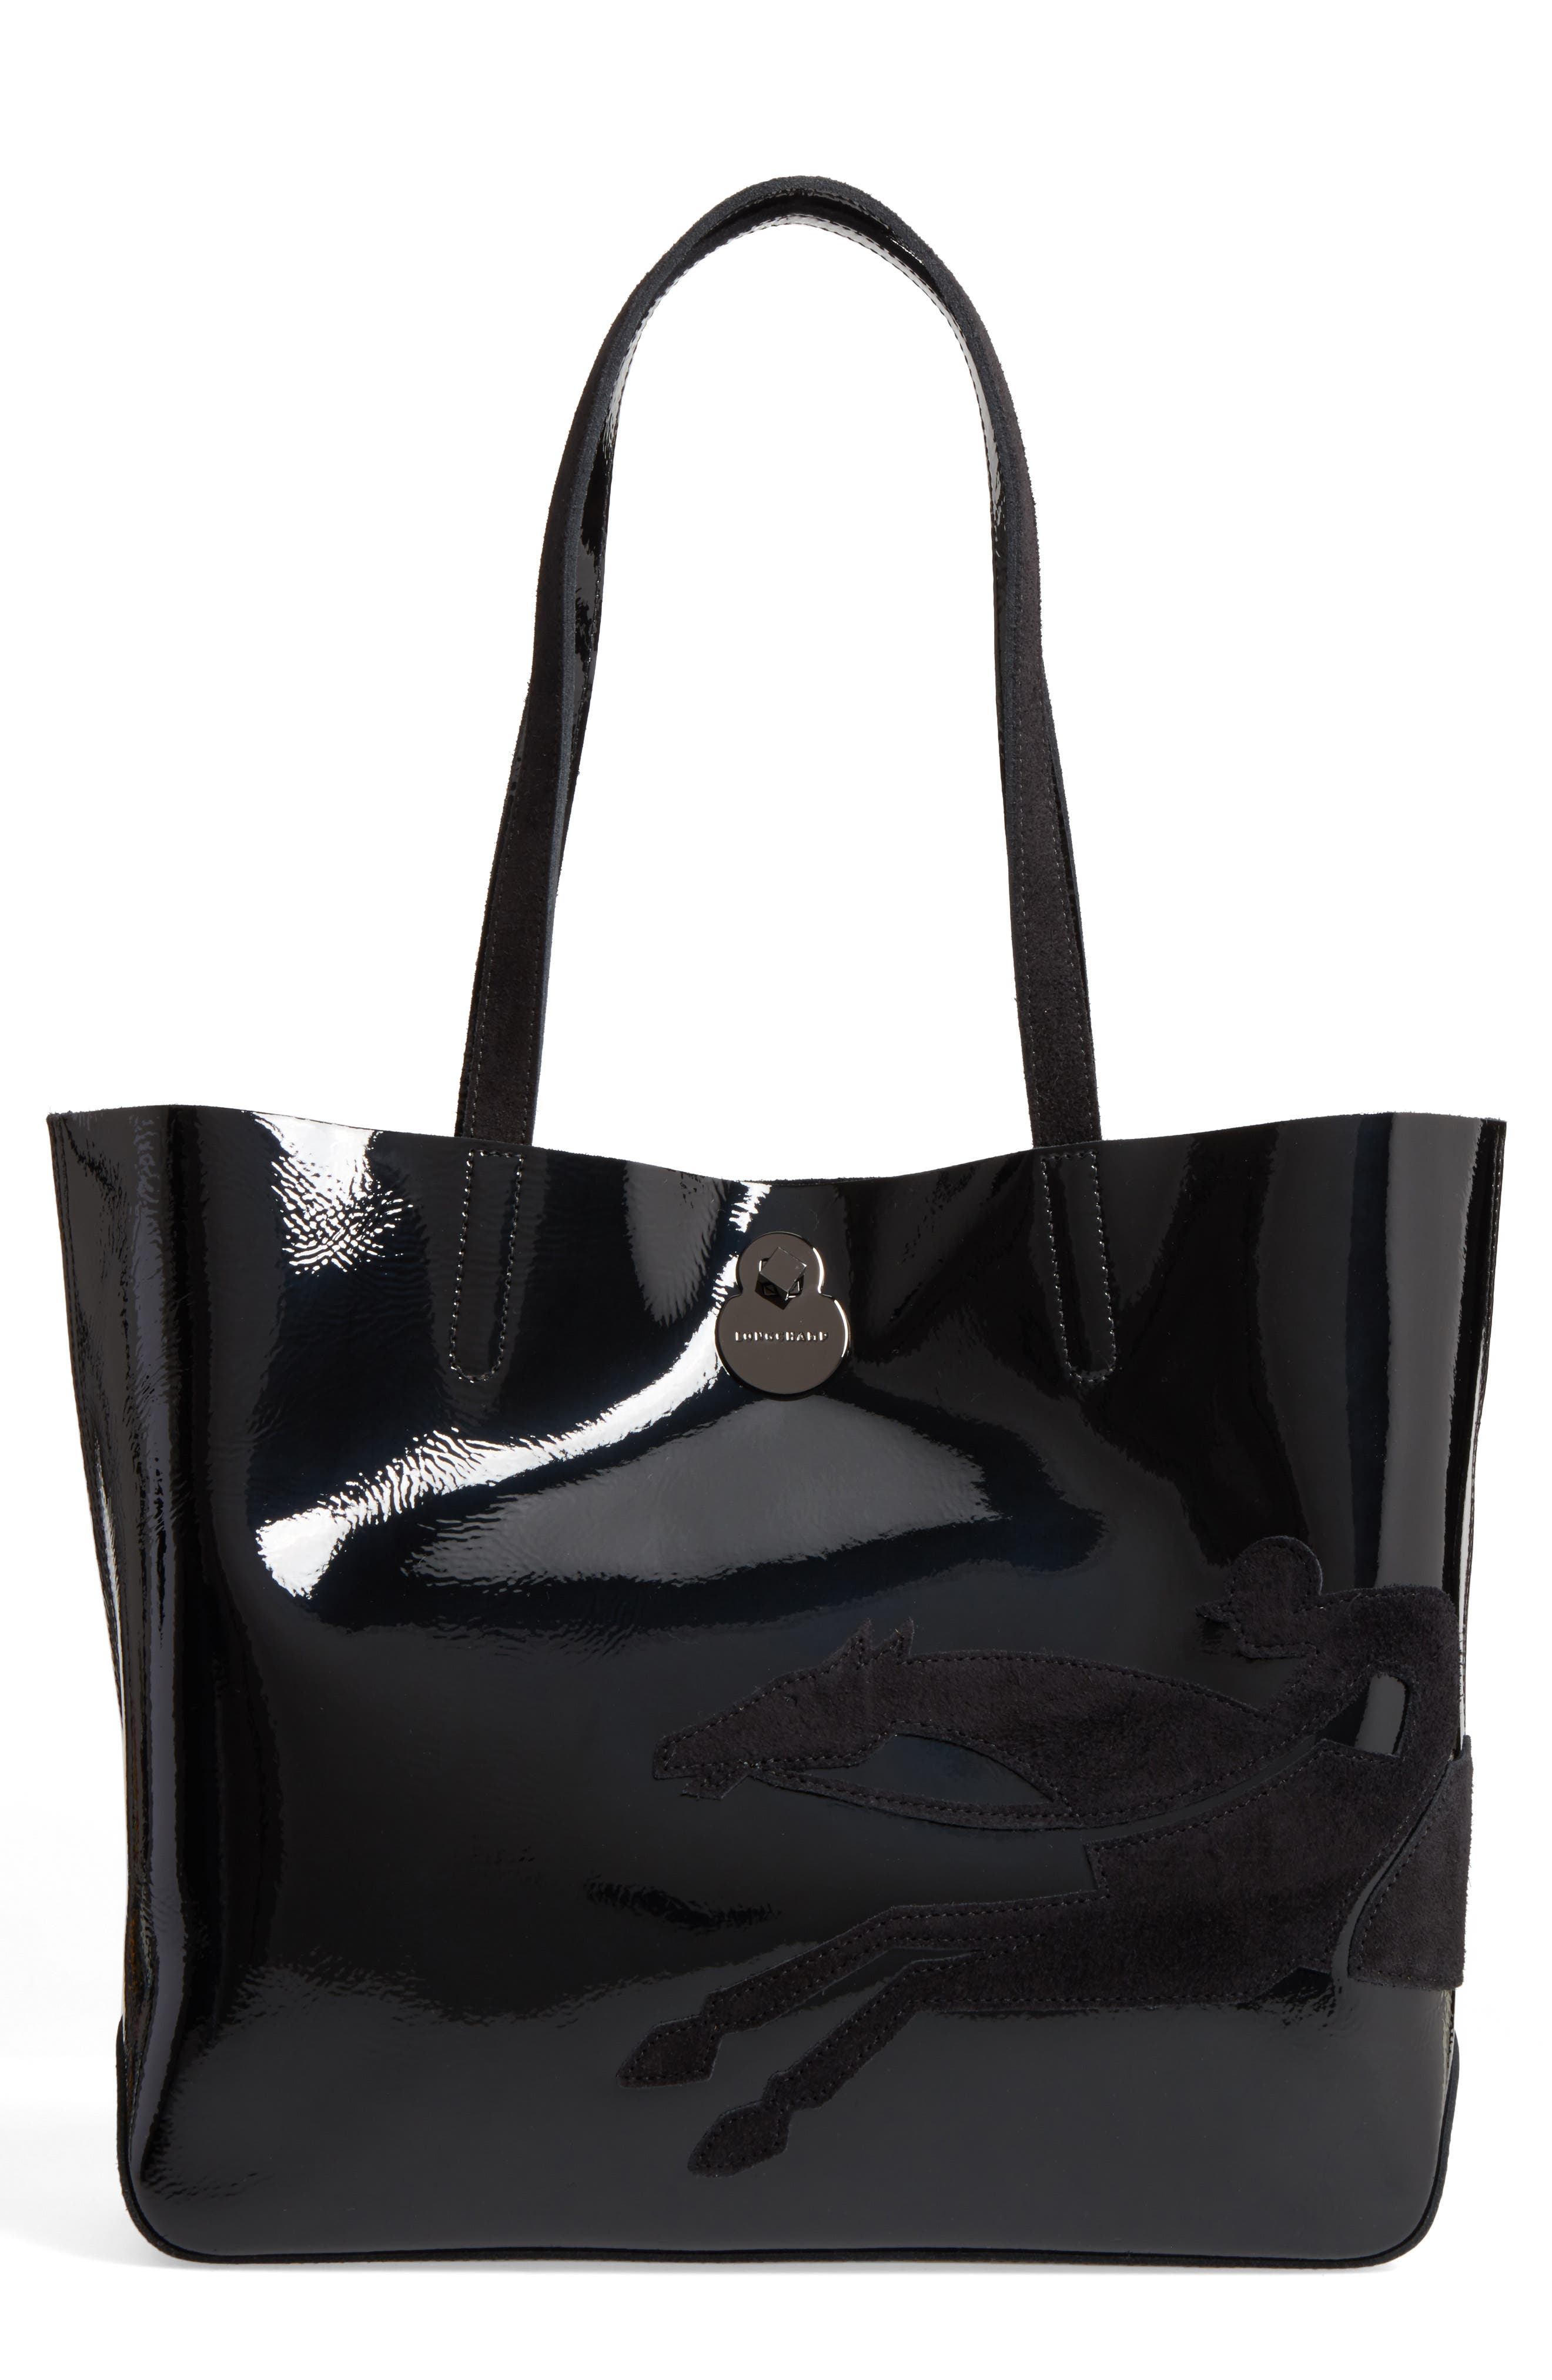 Shop-It Leather Tote,                             Main thumbnail 1, color,                             Black